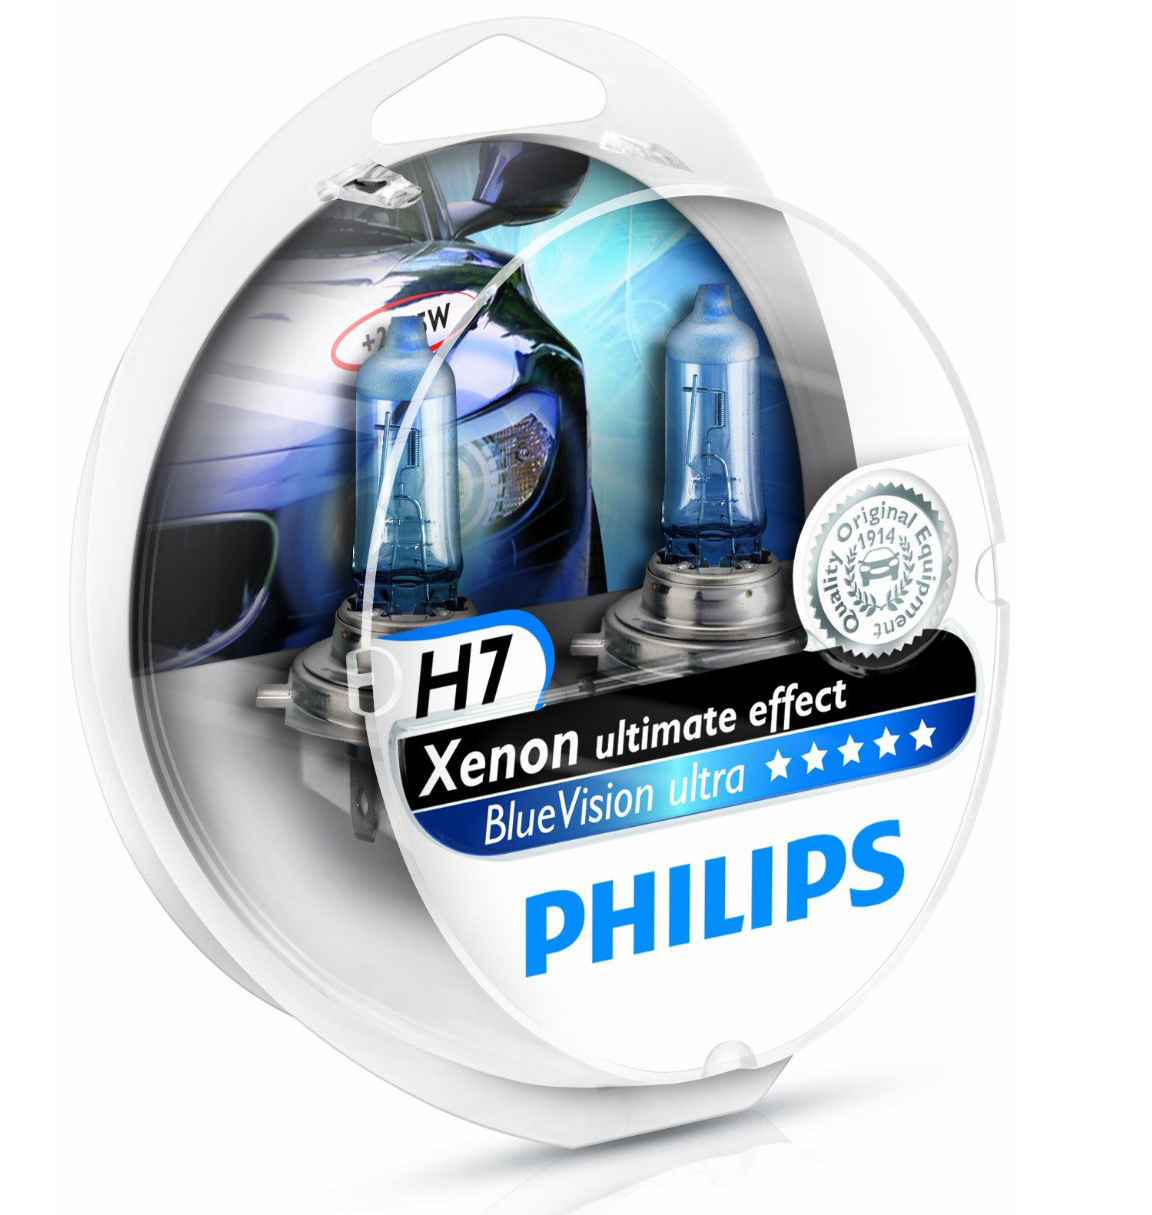 pack 2 ampoules h7 philips blue vision ultra 5w yakaequiper. Black Bedroom Furniture Sets. Home Design Ideas